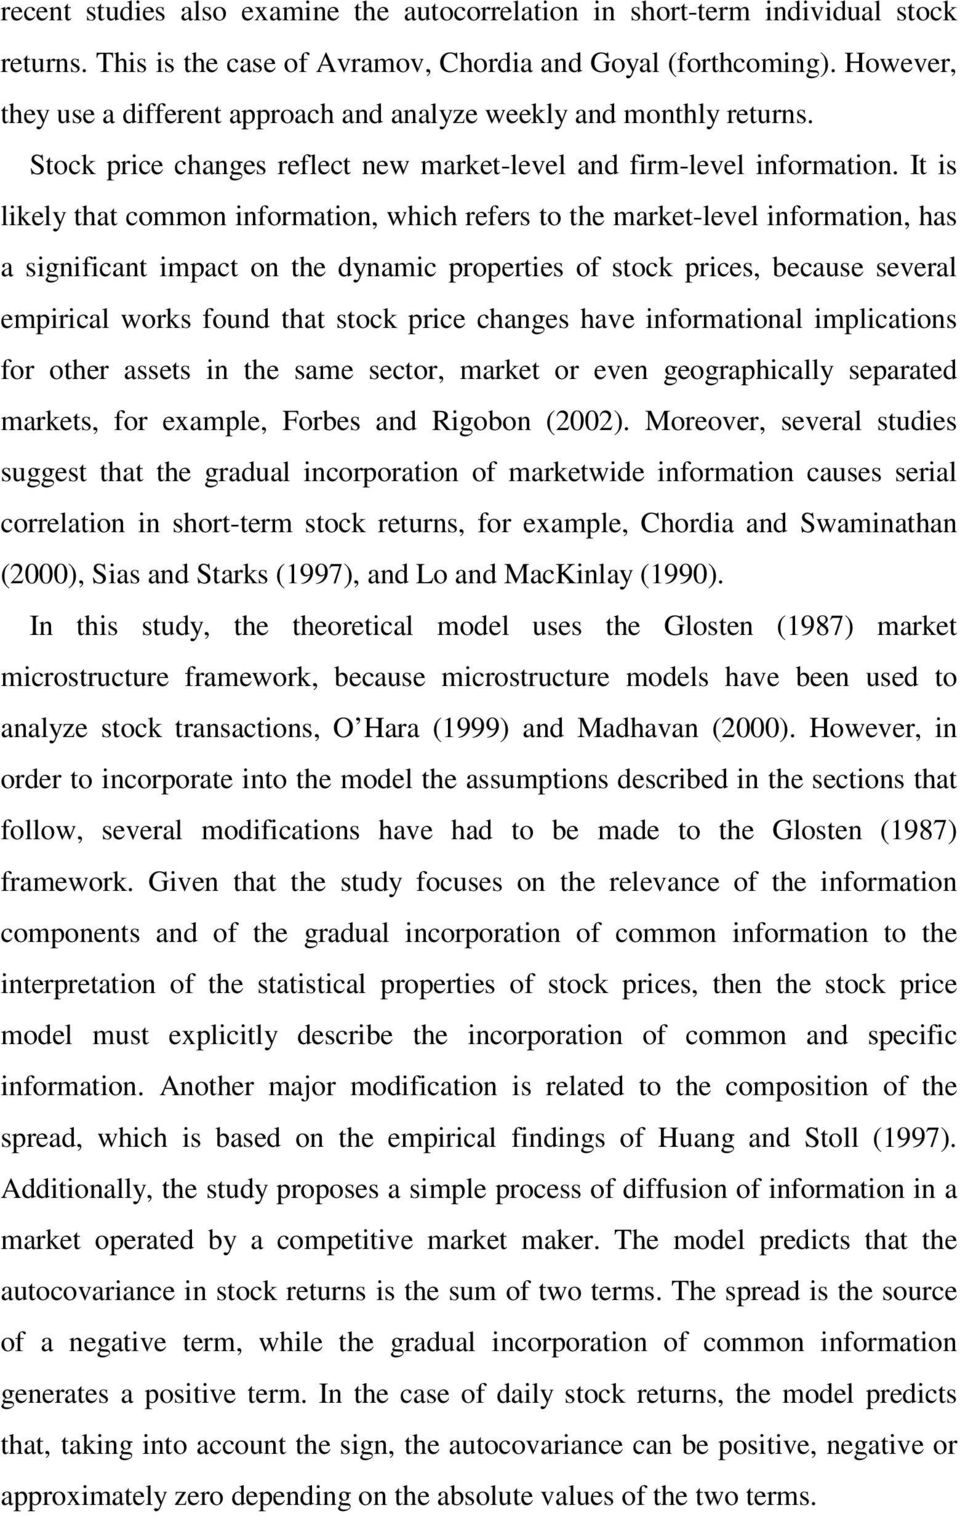 It is likely that common information, which refers to the market-level information, has a significant impact on the dynamic properties of stock prices, because several empirical works found that